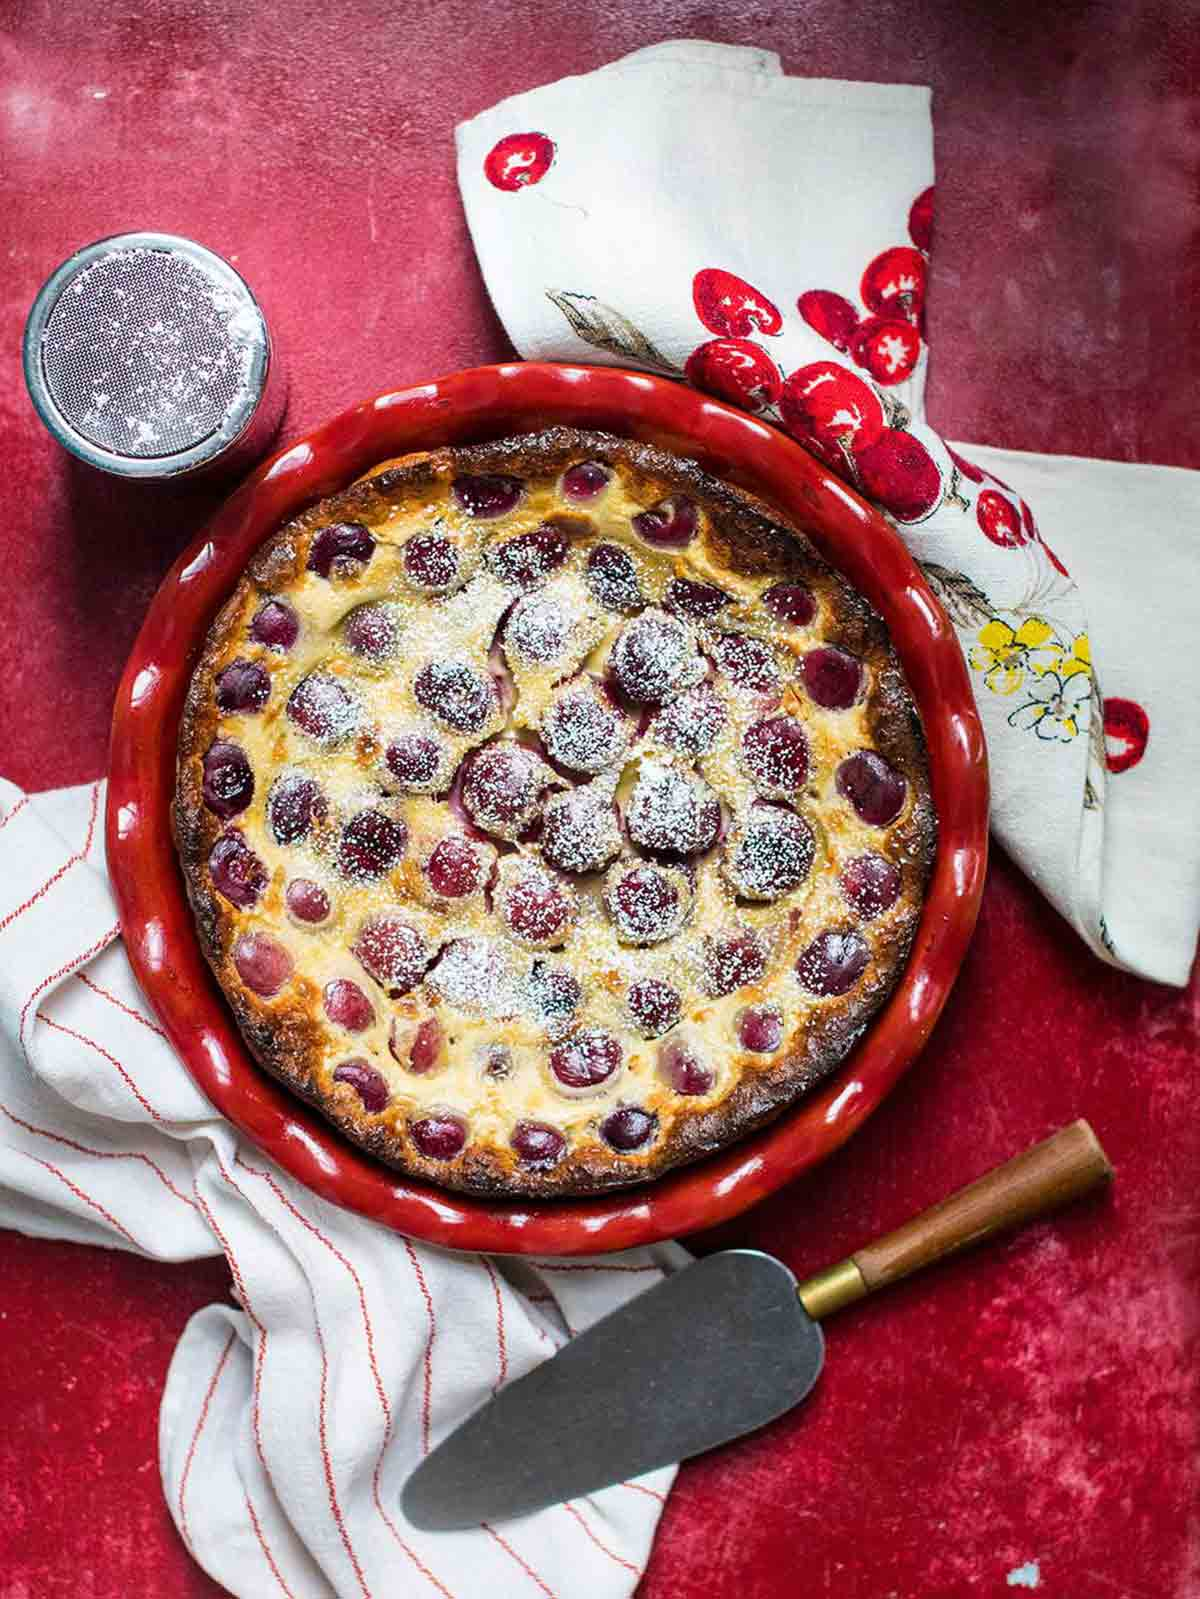 A cherry clafouti in a red dish with cherry dish towels